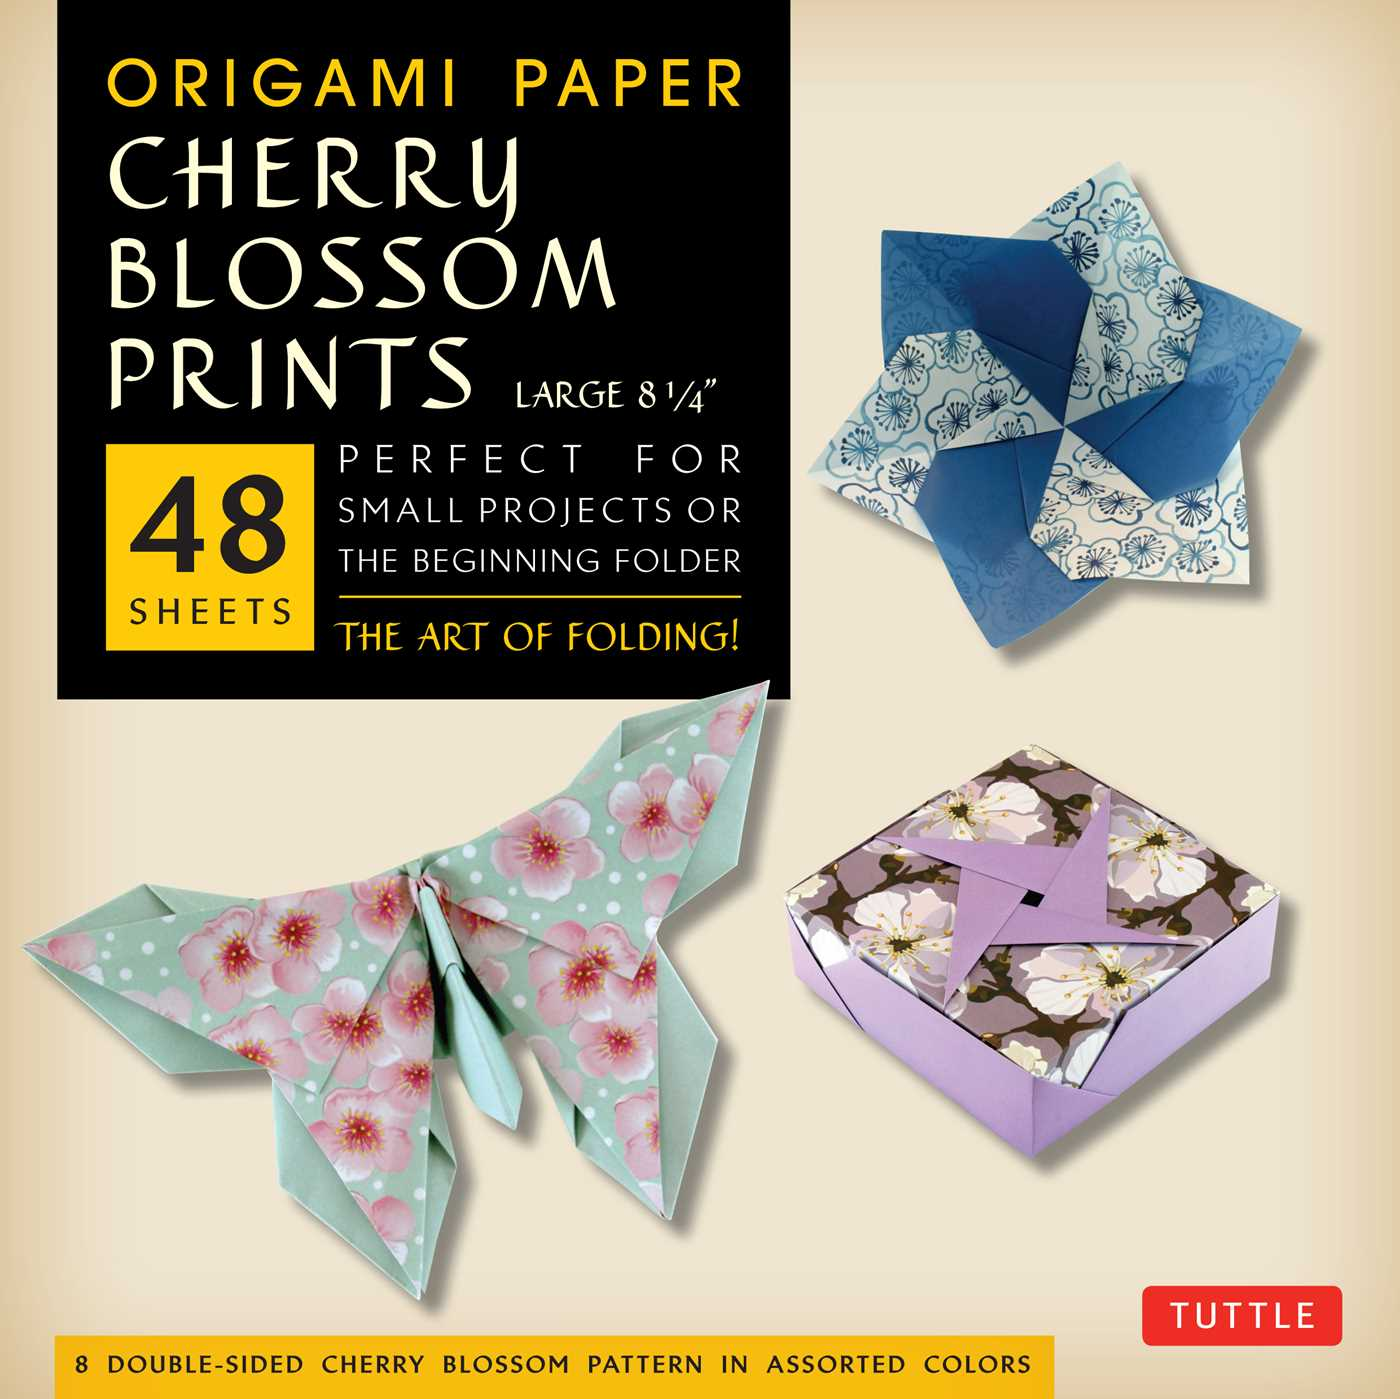 Origami-paper-cherry-blossom-patterns-large-8-48-9780804844840_hr